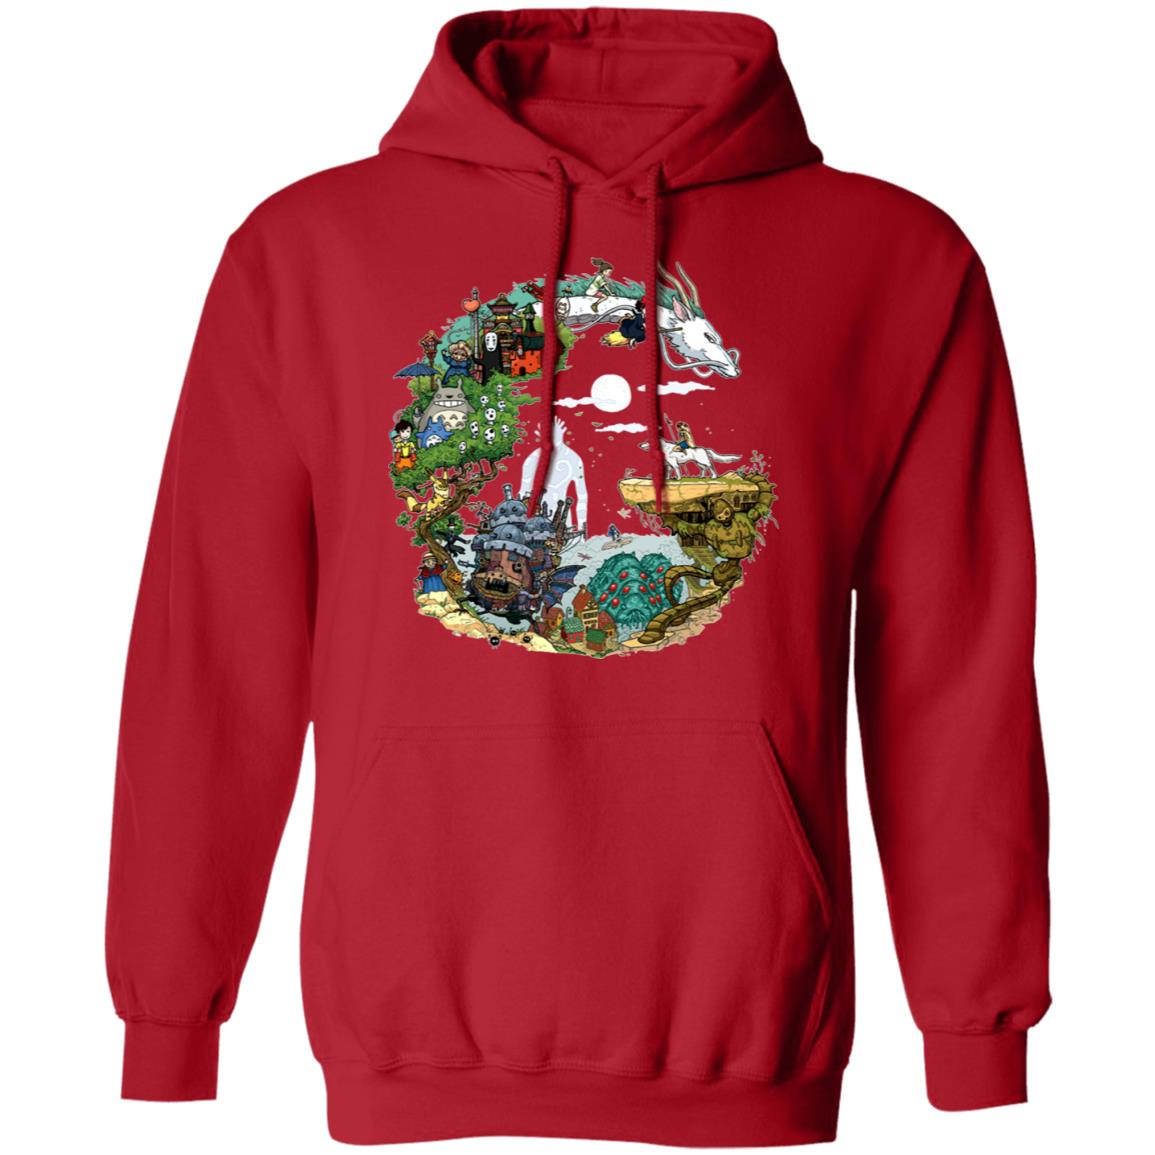 Ghibli Movie Circle Hoodie